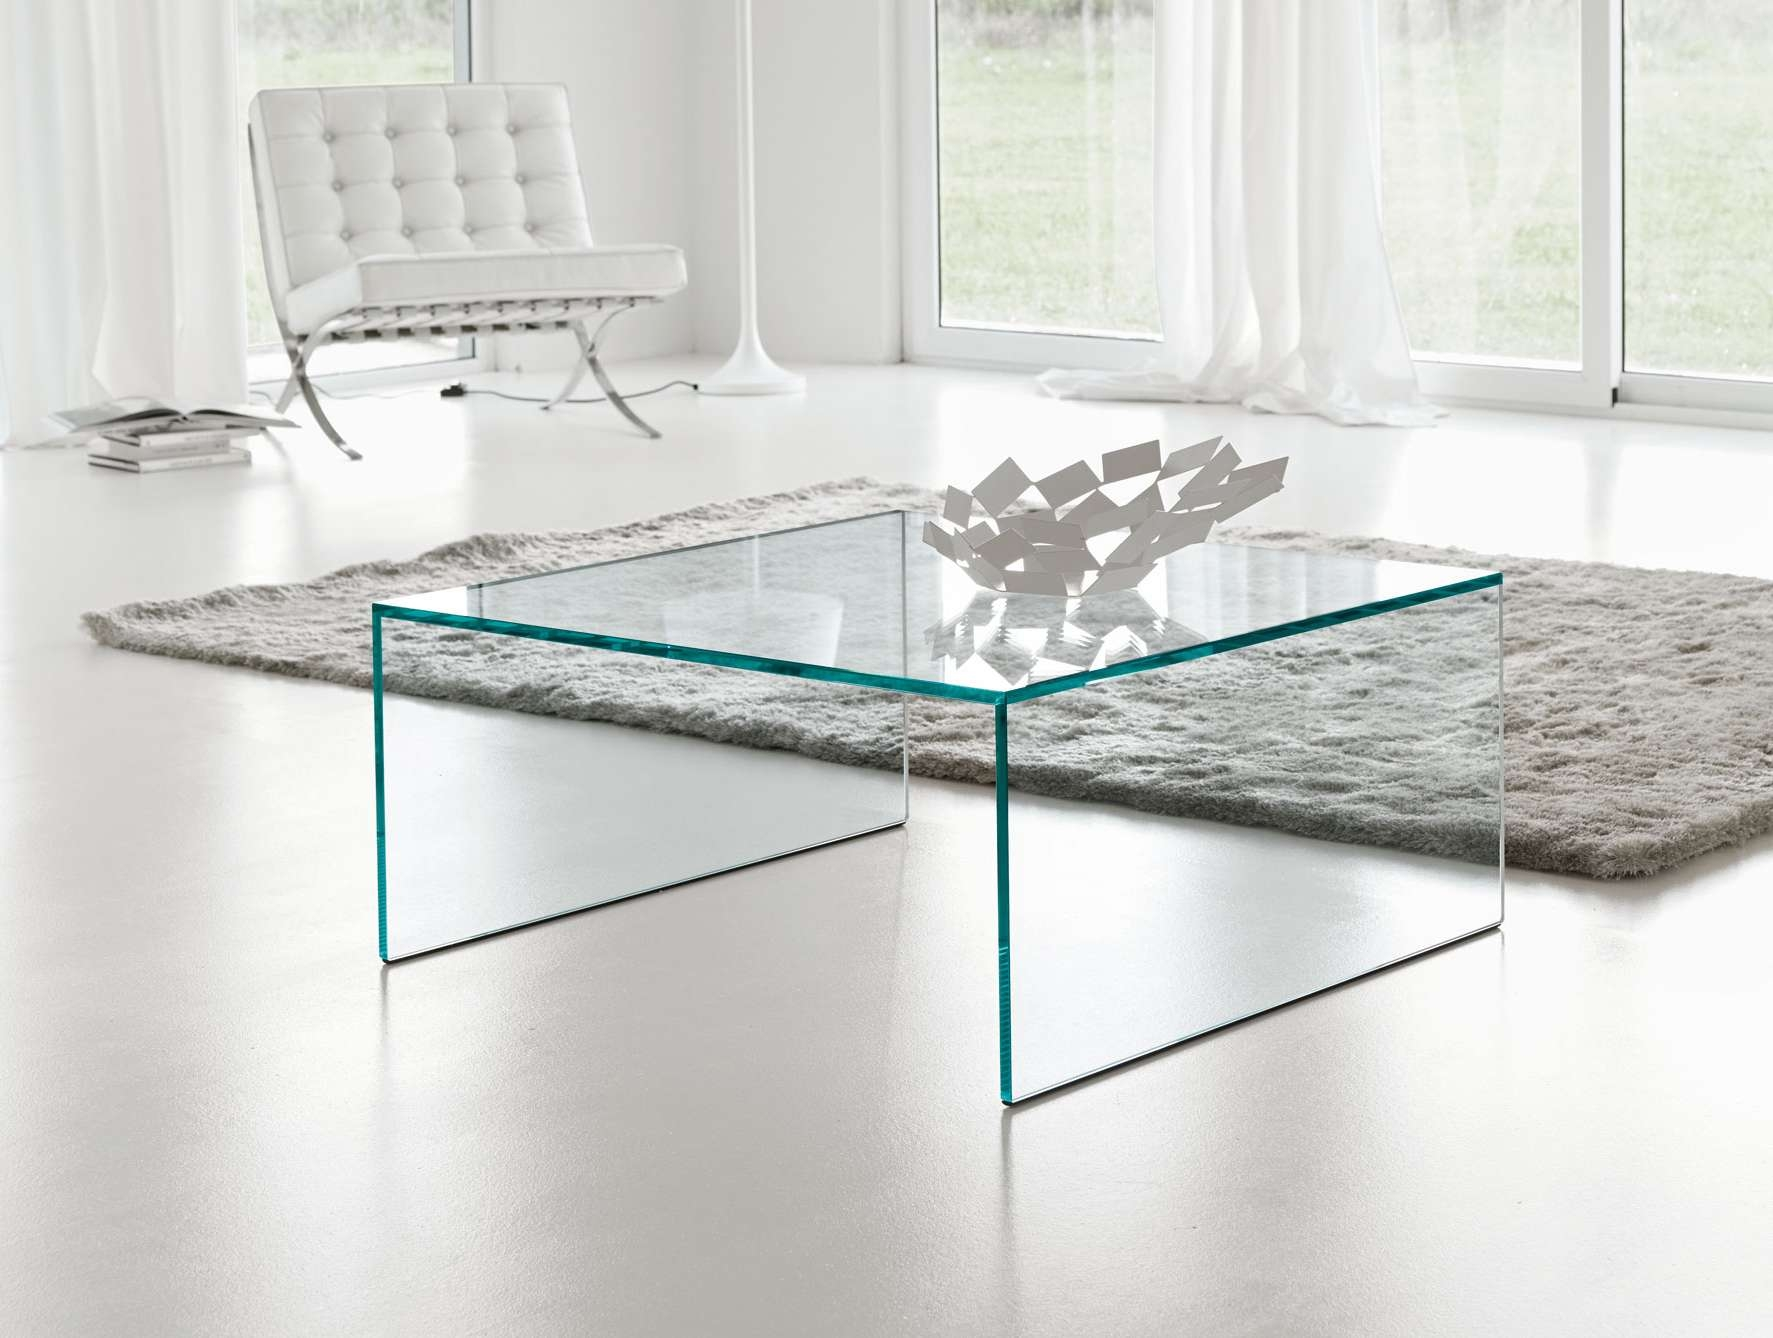 Nella Vetrina Tonelli Eden Modern Italian Square Coffee Table Pertaining To Recent Square Glass Coffee Tables (View 13 of 20)